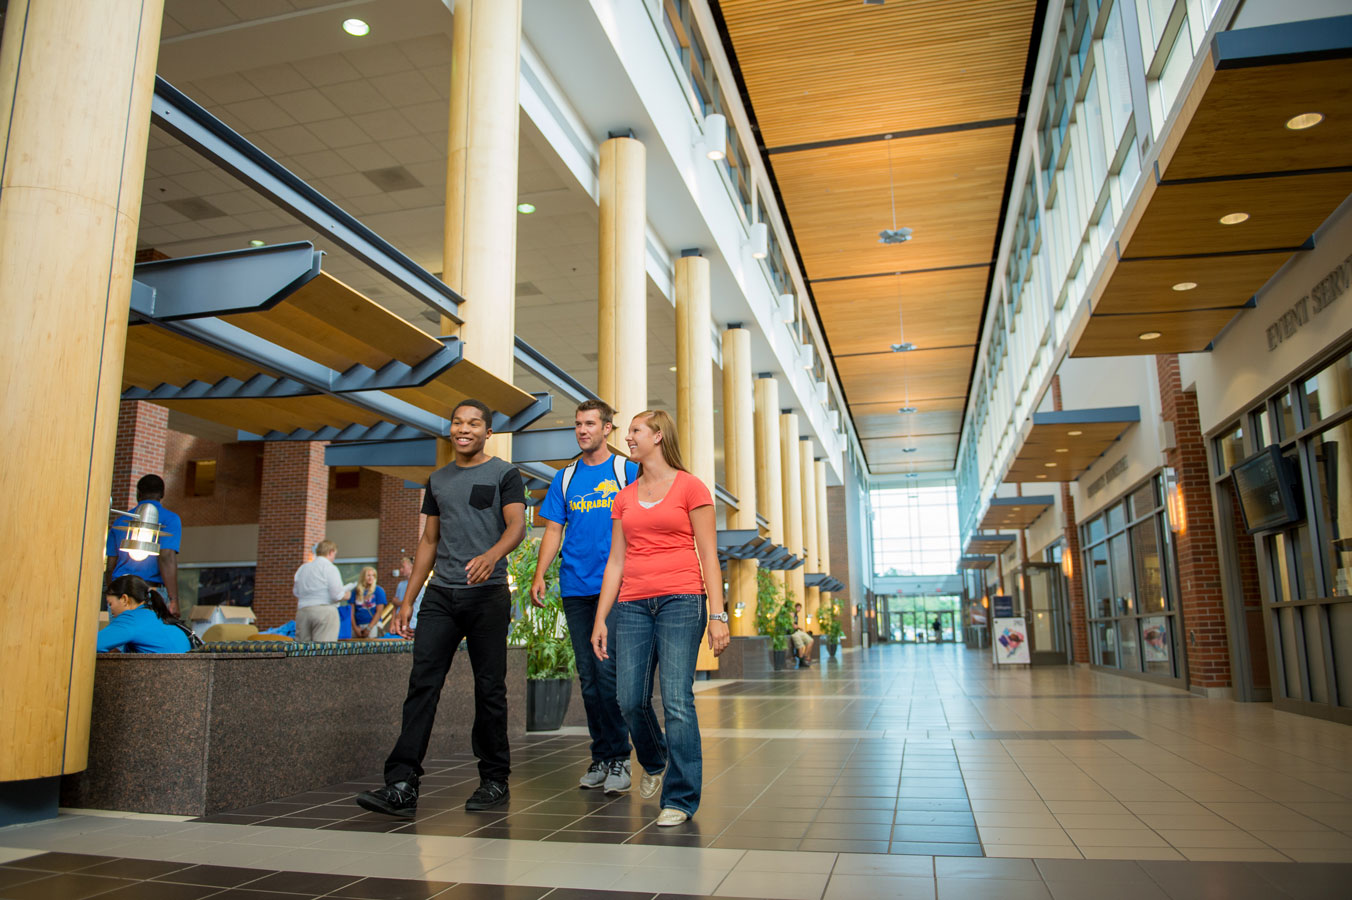 Students walking through the University Student Union